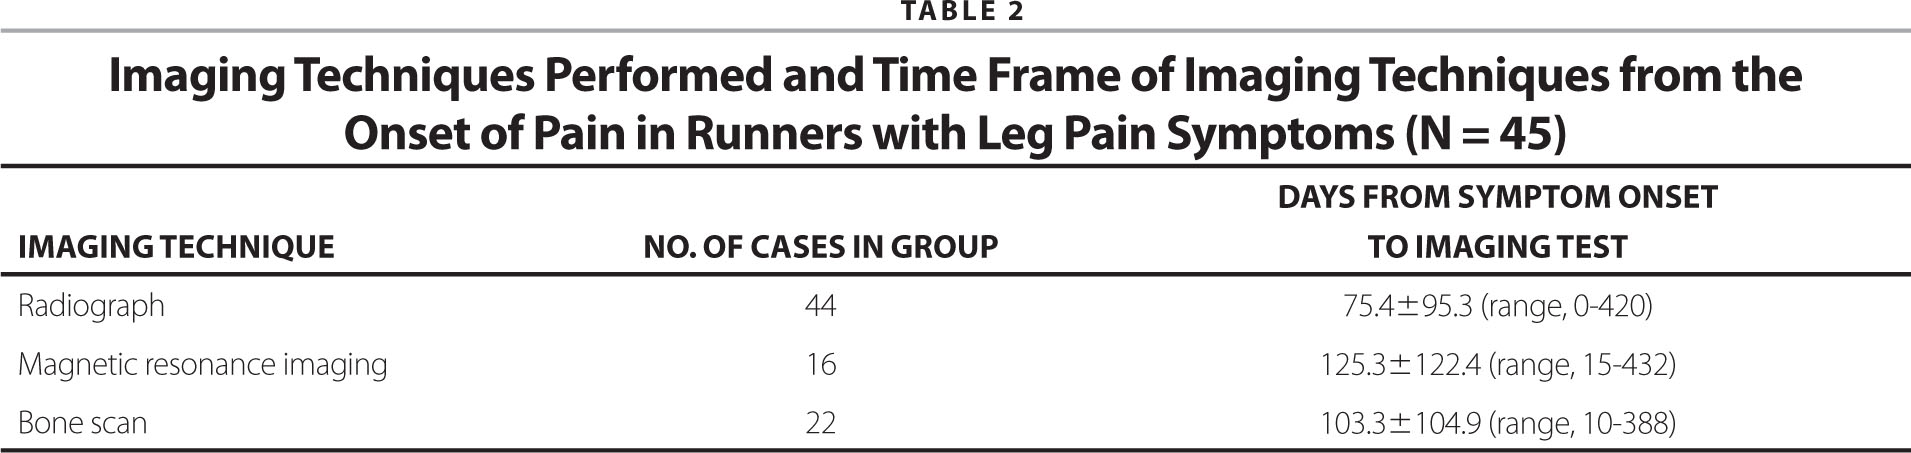 Imaging Techniques Performed and Time Frame of Imaging Techniques from the Onset of Pain in Runners with Leg Pain Symptoms (N = 45)